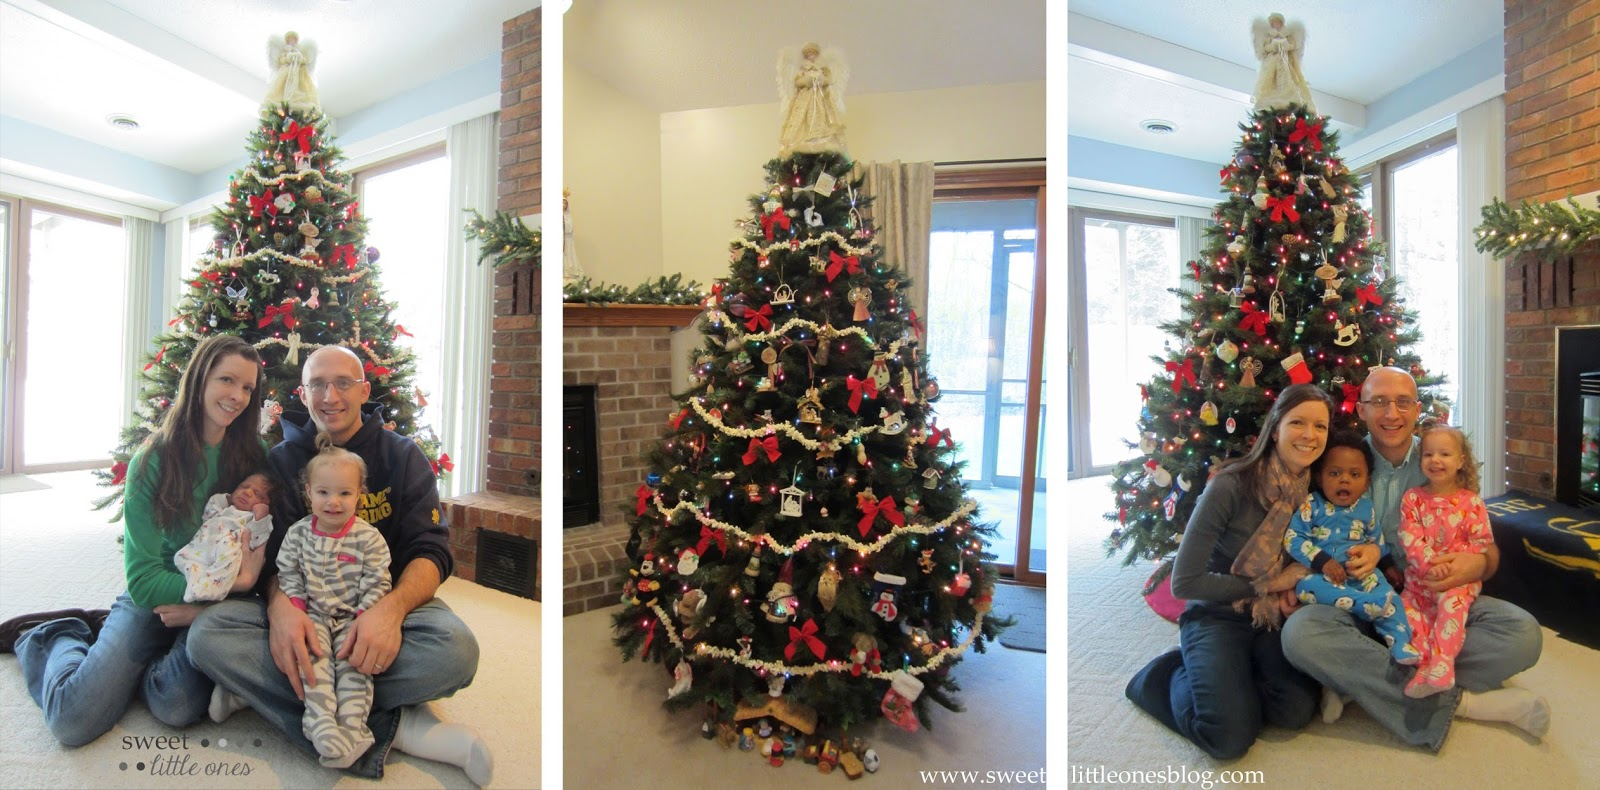 Favorite Family Christmas Traditions - Christmas Tree Traditions - www.sweetlittleonesblog.com